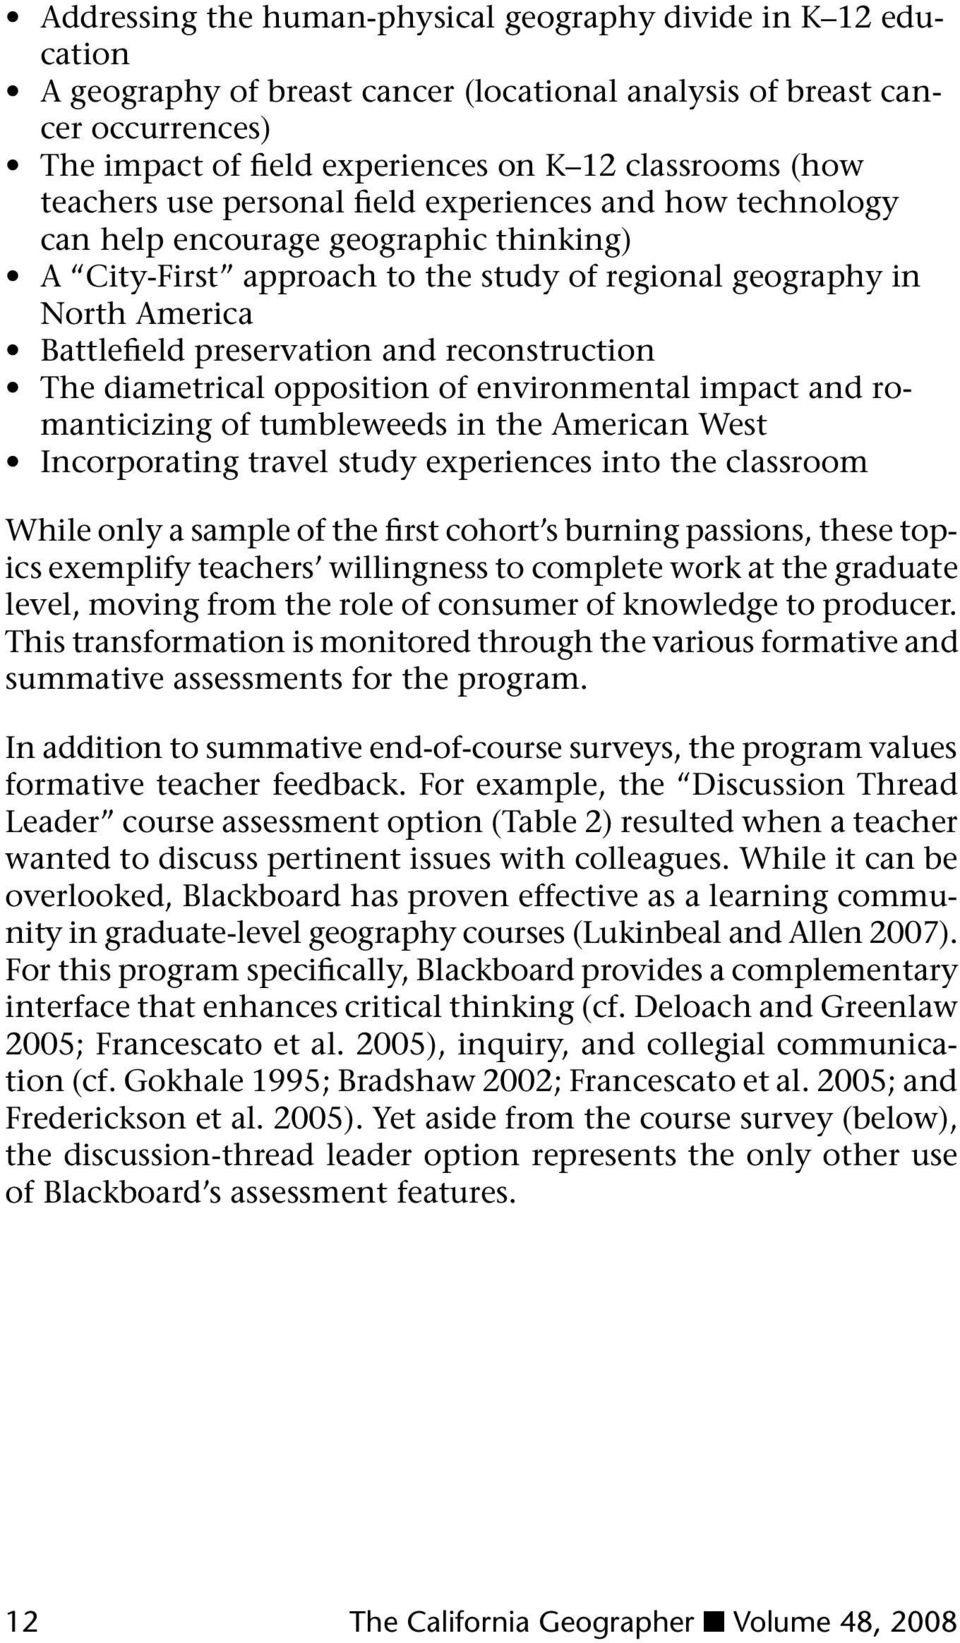 preservation and reconstruction The diametrical opposition of environmental impact and romanticizing of tumbleweeds in the American West Incorporating travel study experiences into the classroom